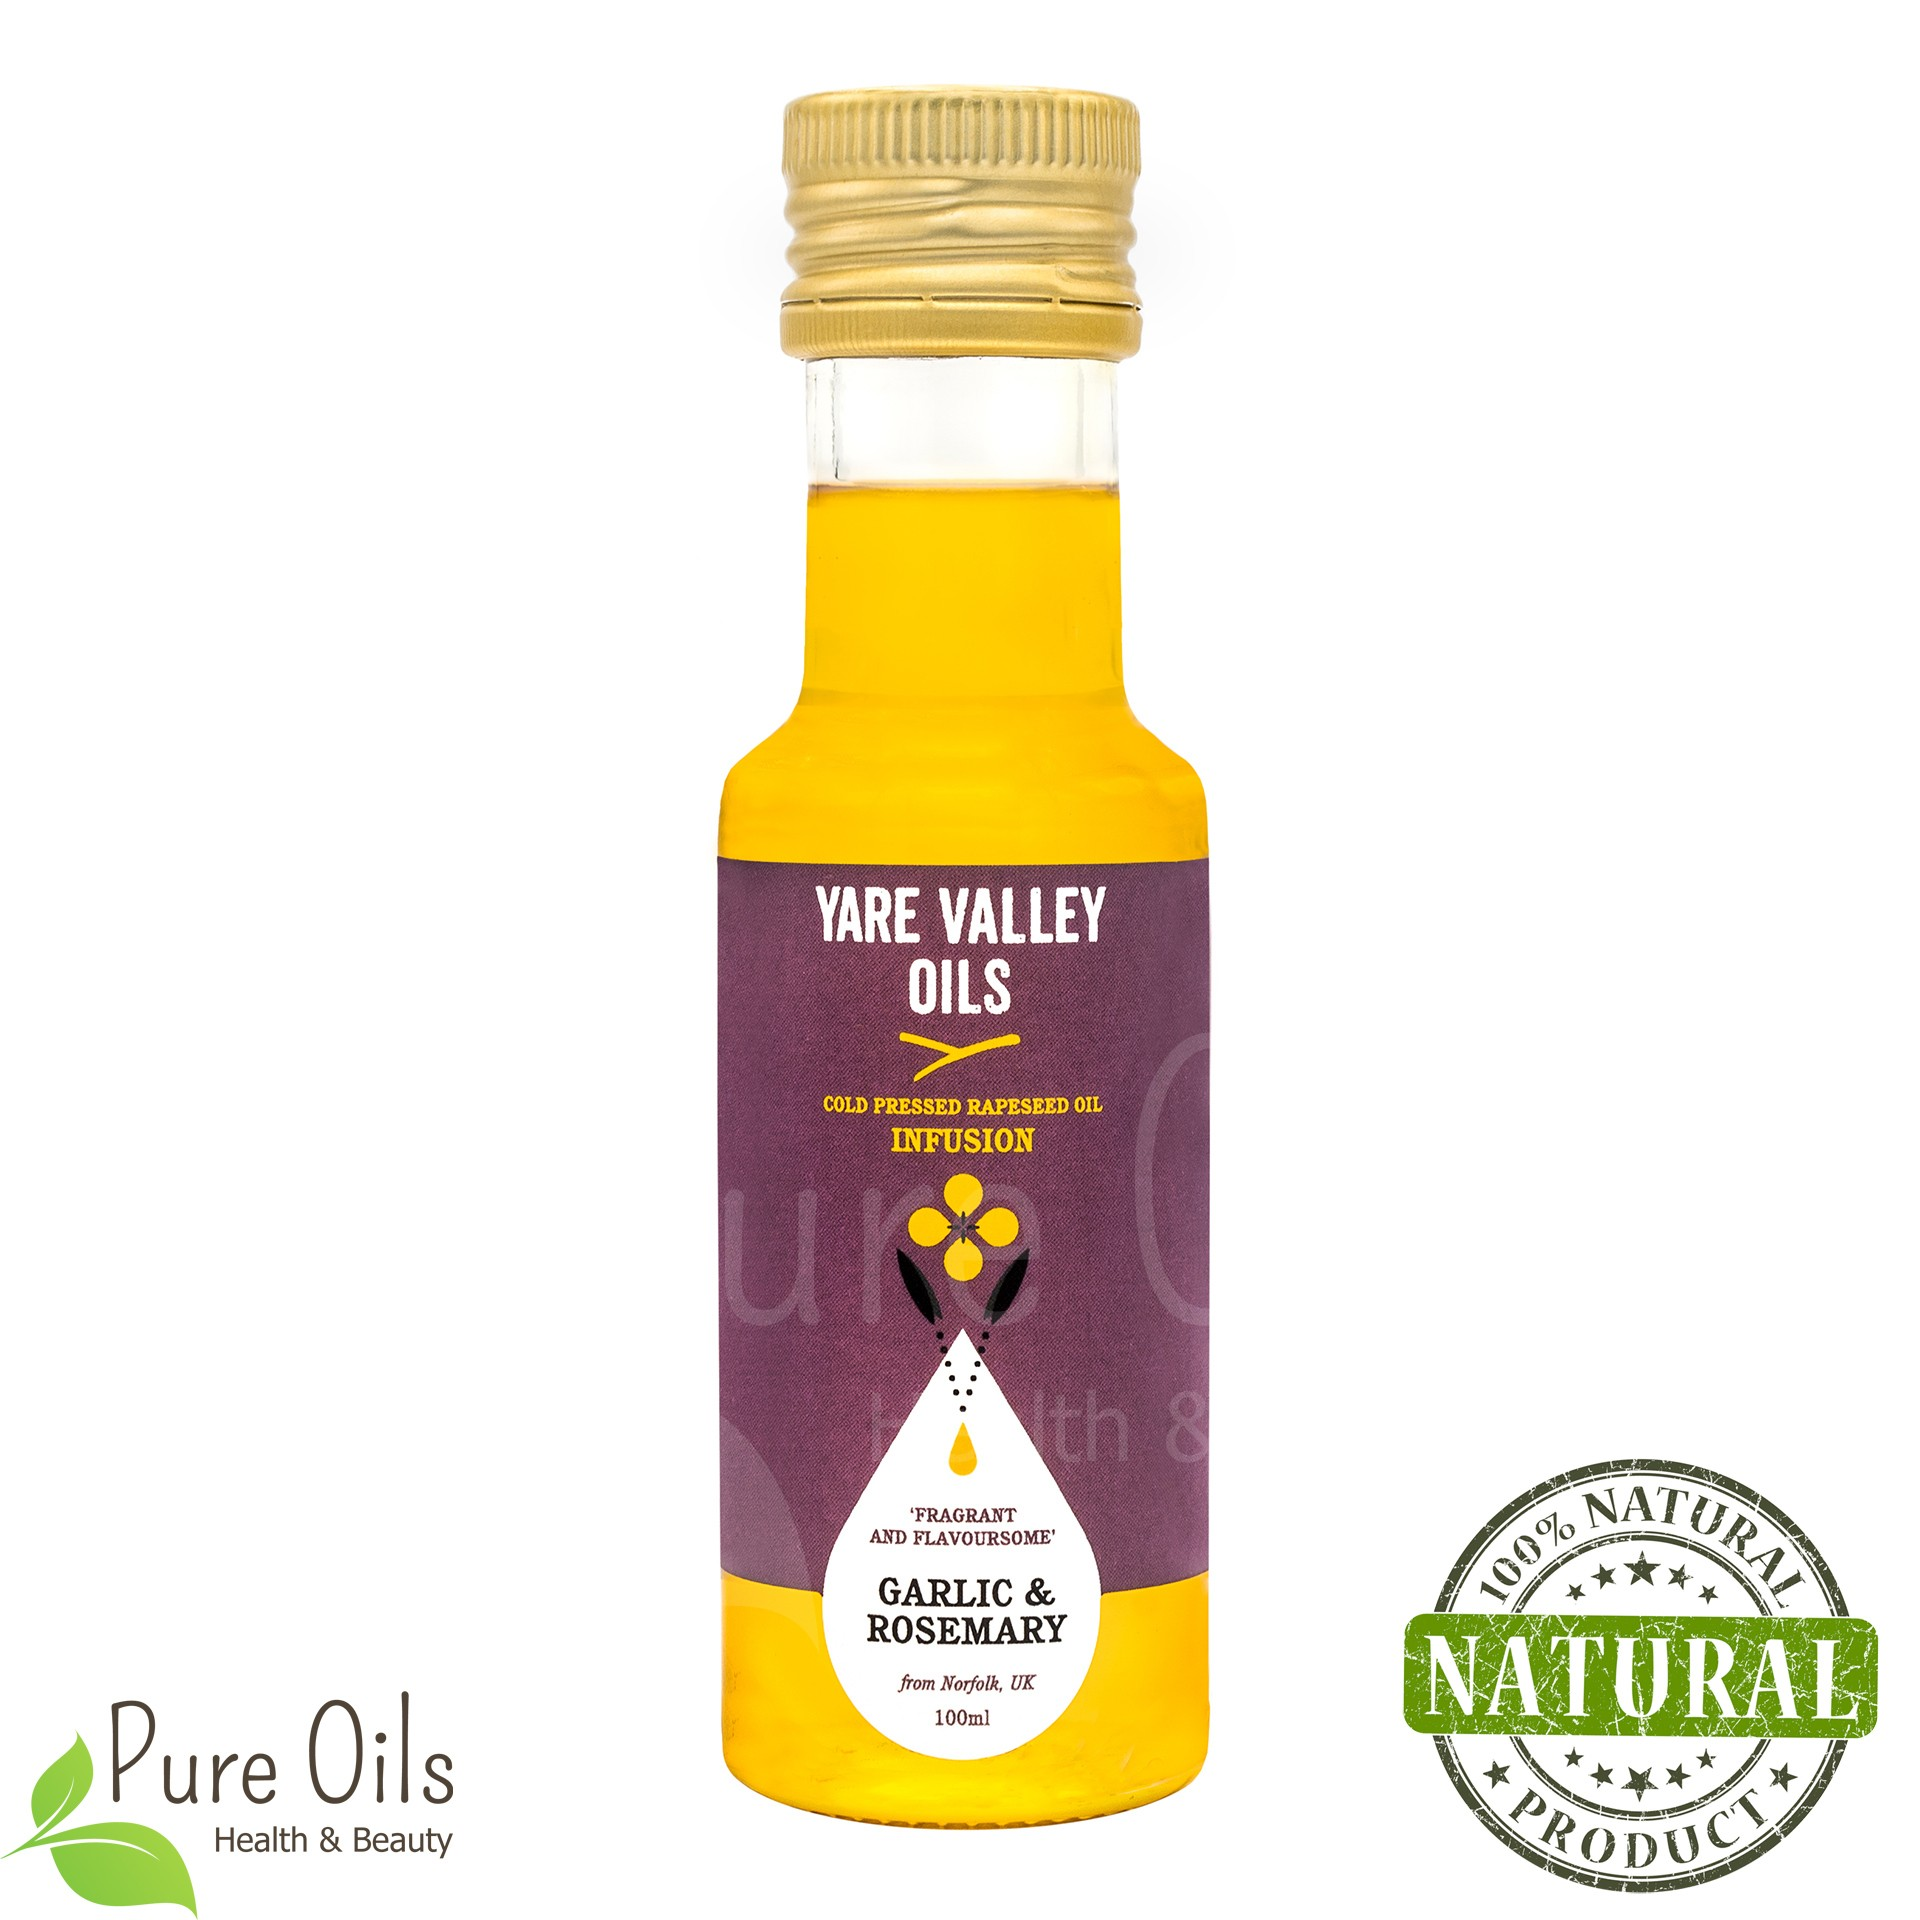 Garlic and Rosemary Rapeseed Oil, Cold Pressed, Yare Valley